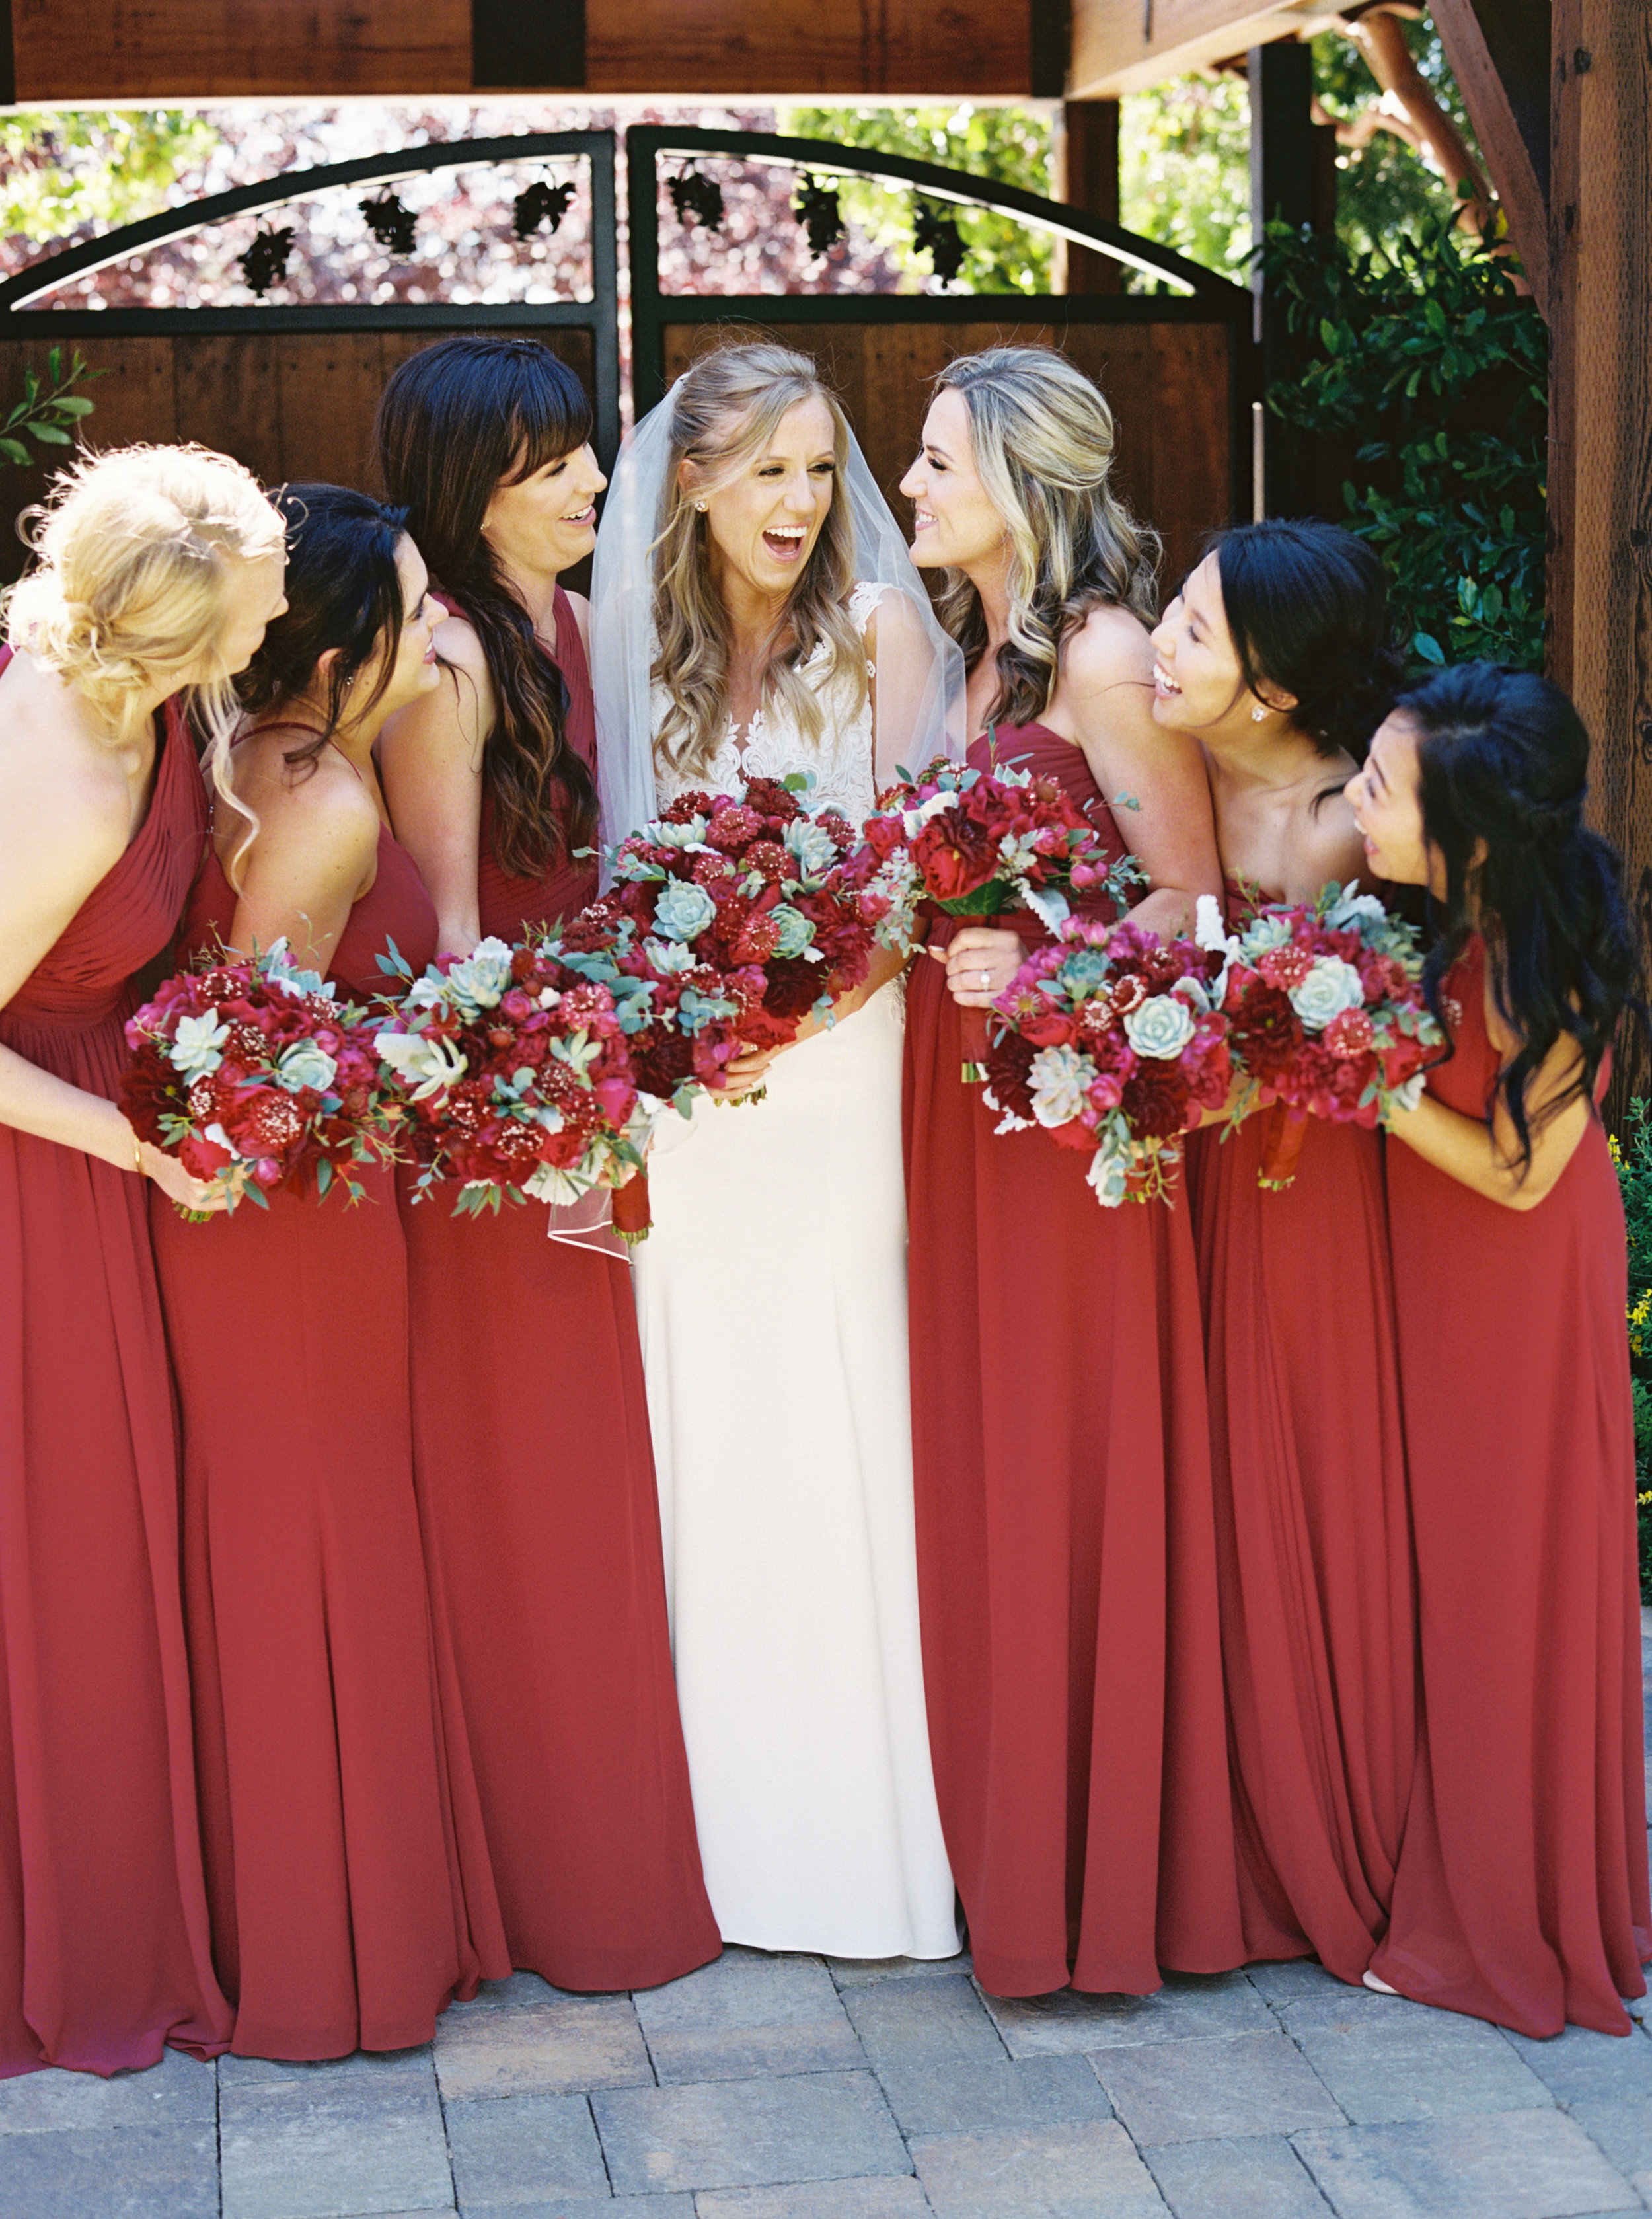 Crooked-vine-winery-wedding-in-livermore-california-30.jpg